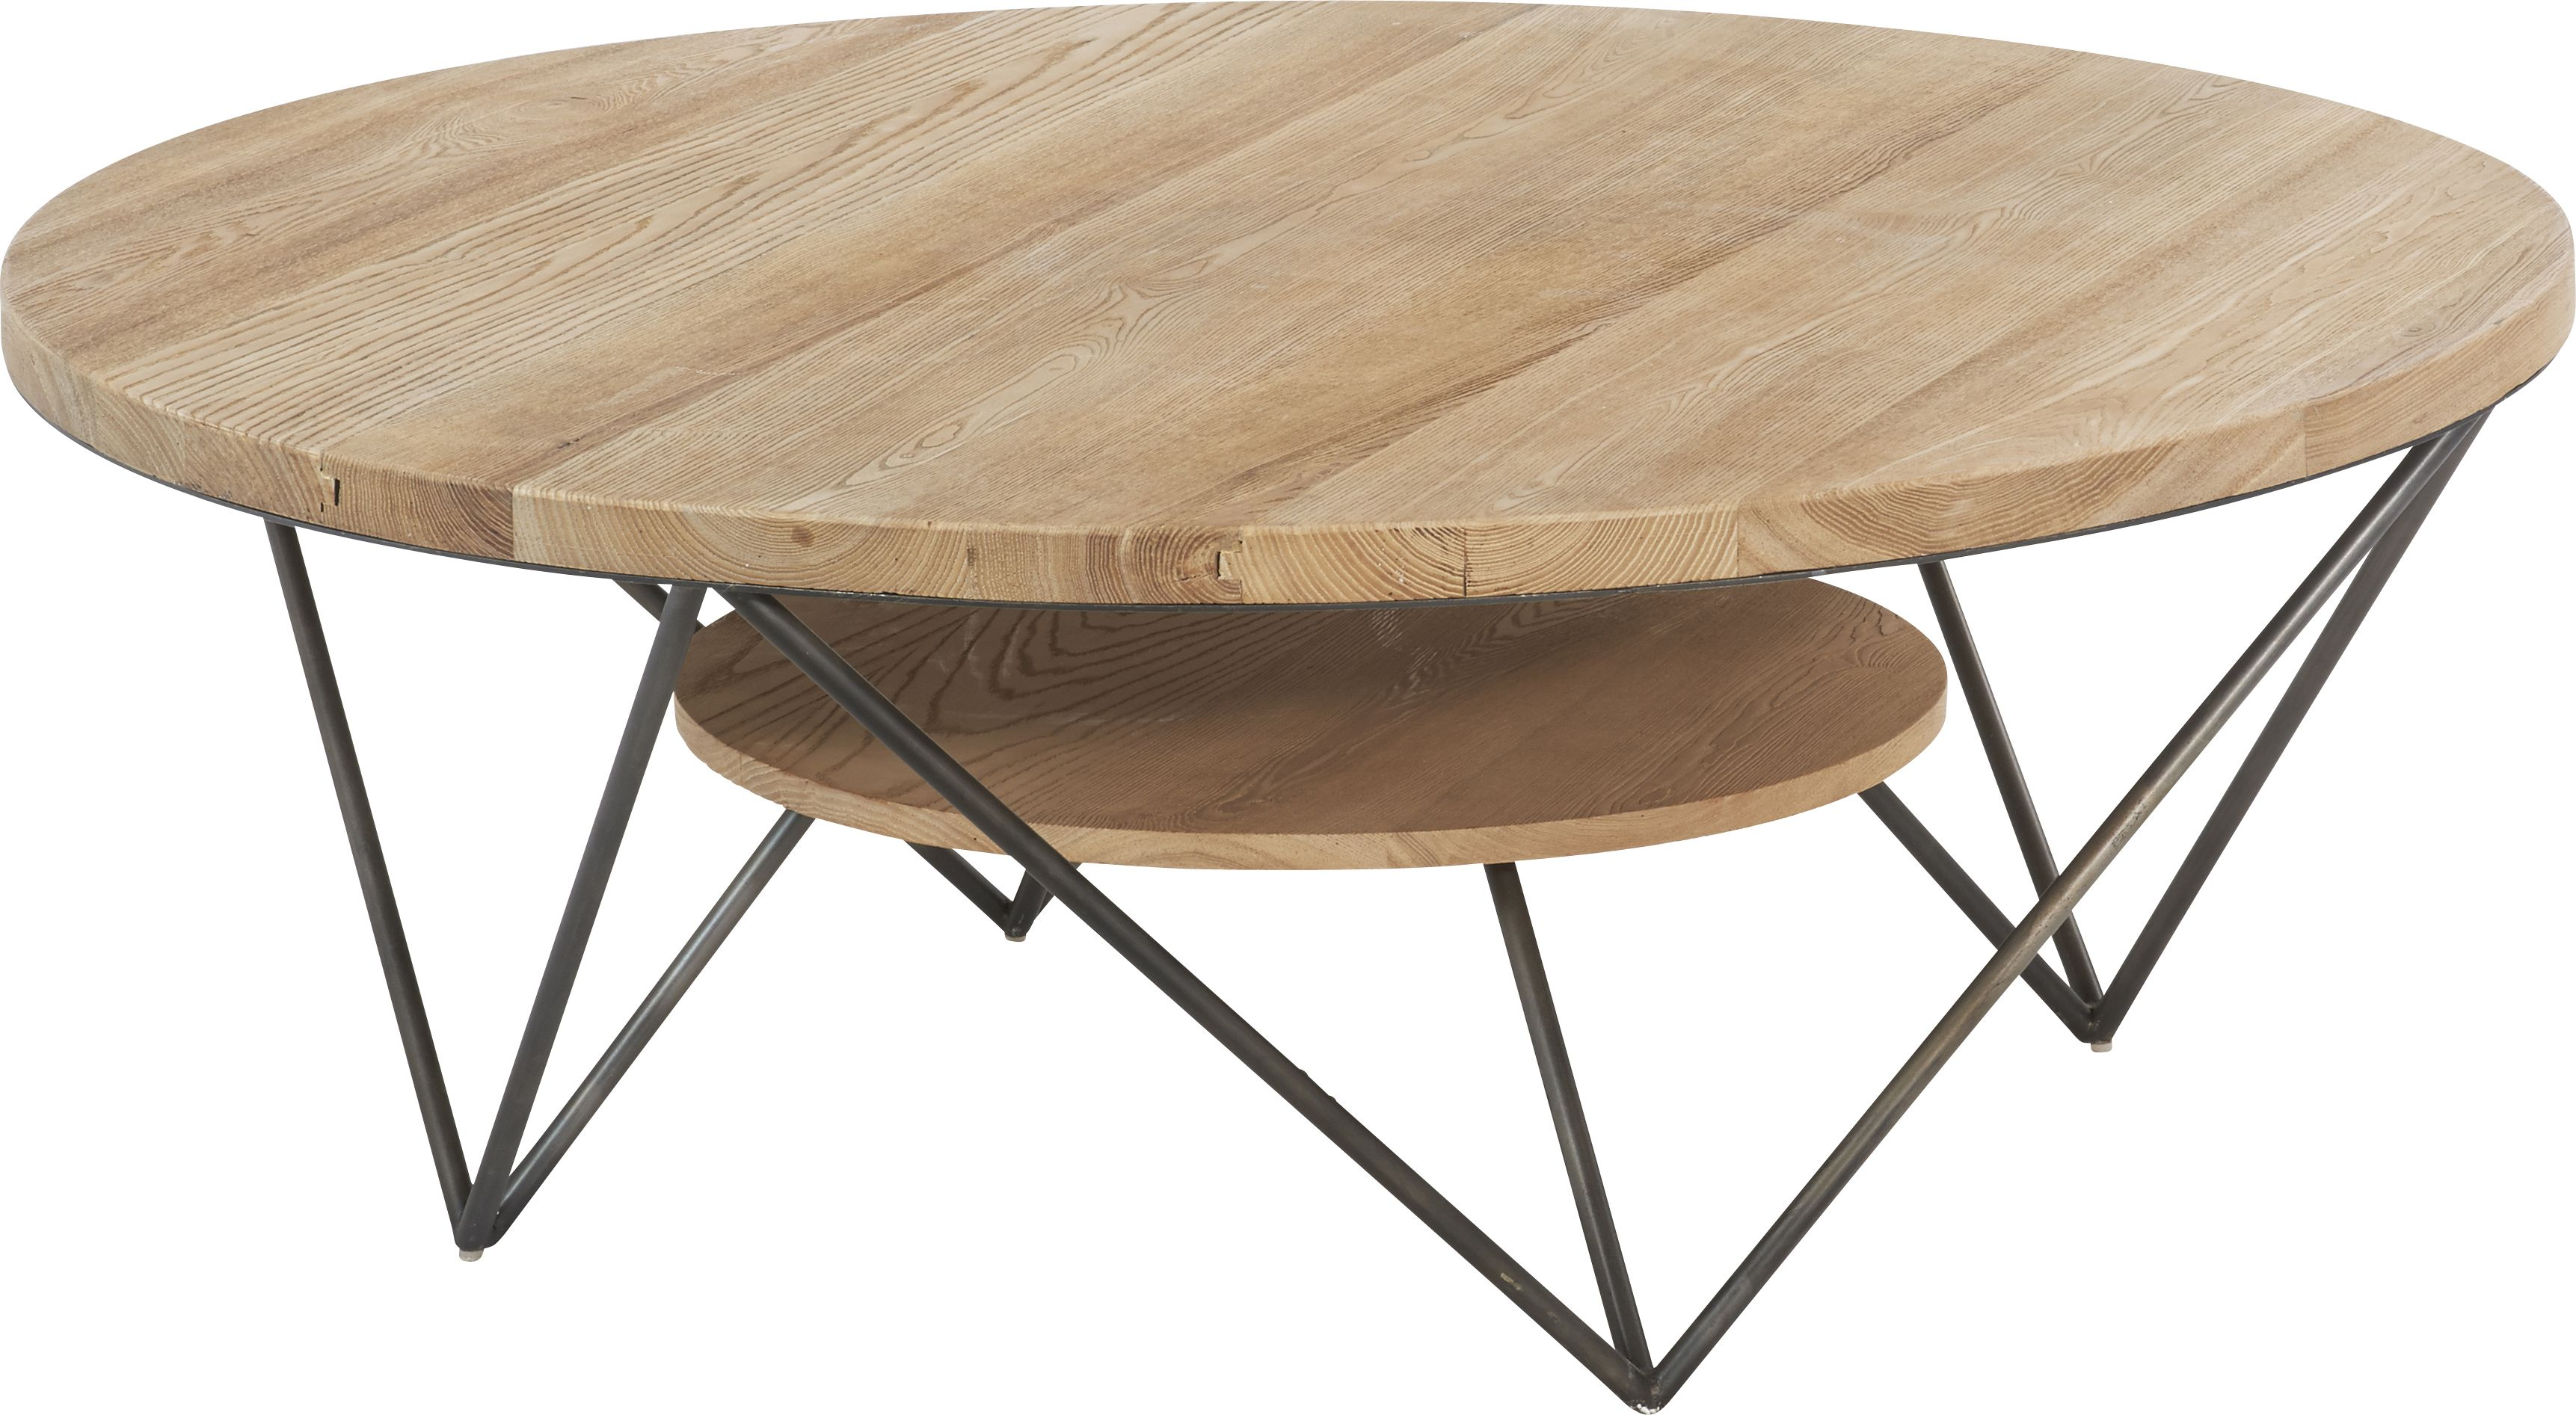 Permalink to Beau Table Basse Bois Design